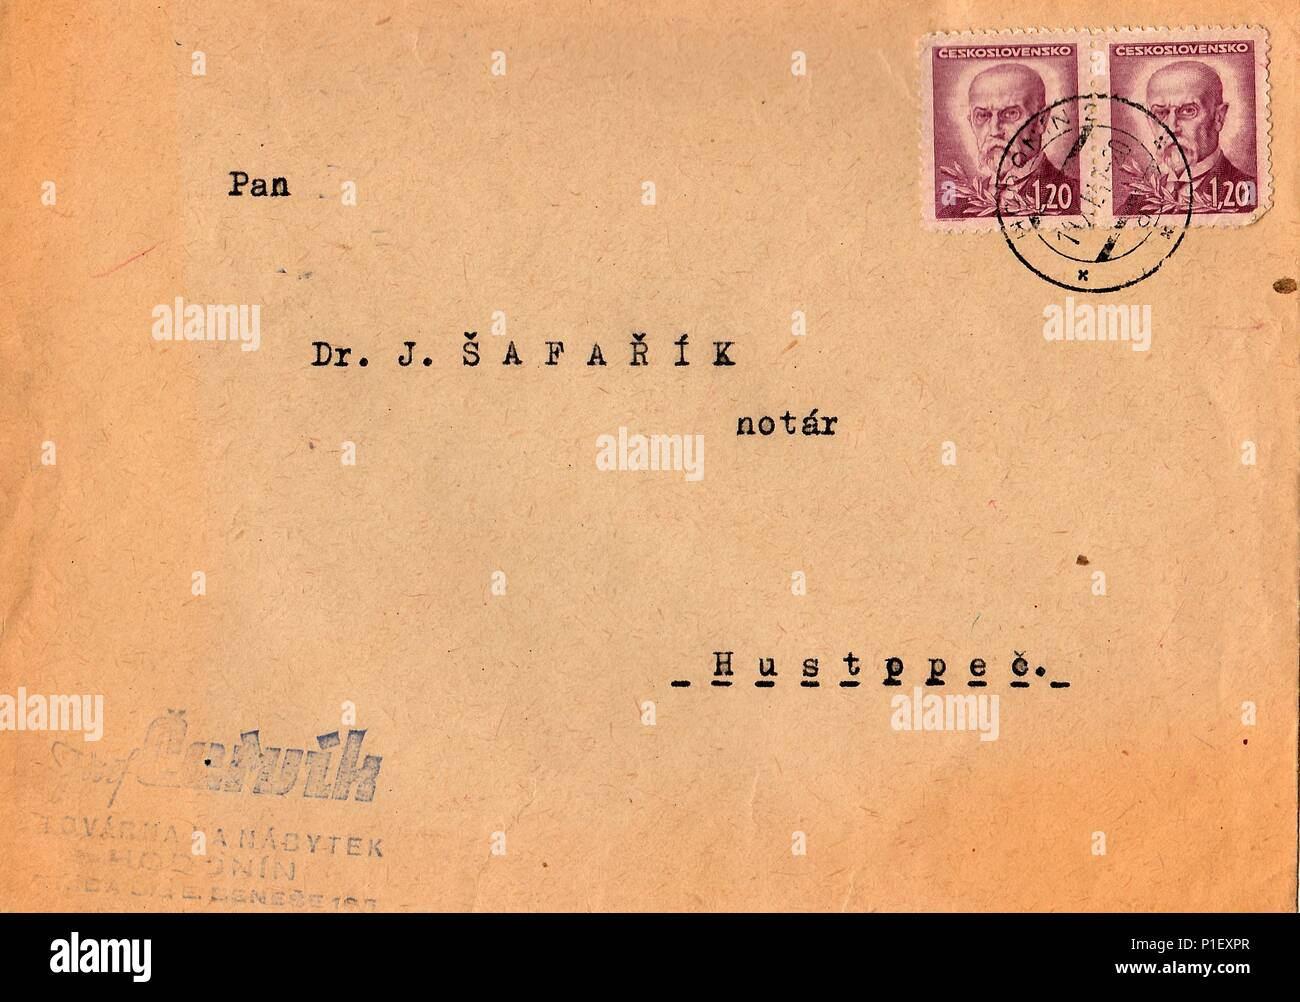 THE CZECHOSLOVAK REPUBLIC - CIRCA 1947: A vintage used envelope and stamps. Rich stain and paper details. Can be used as background. - Stock Image